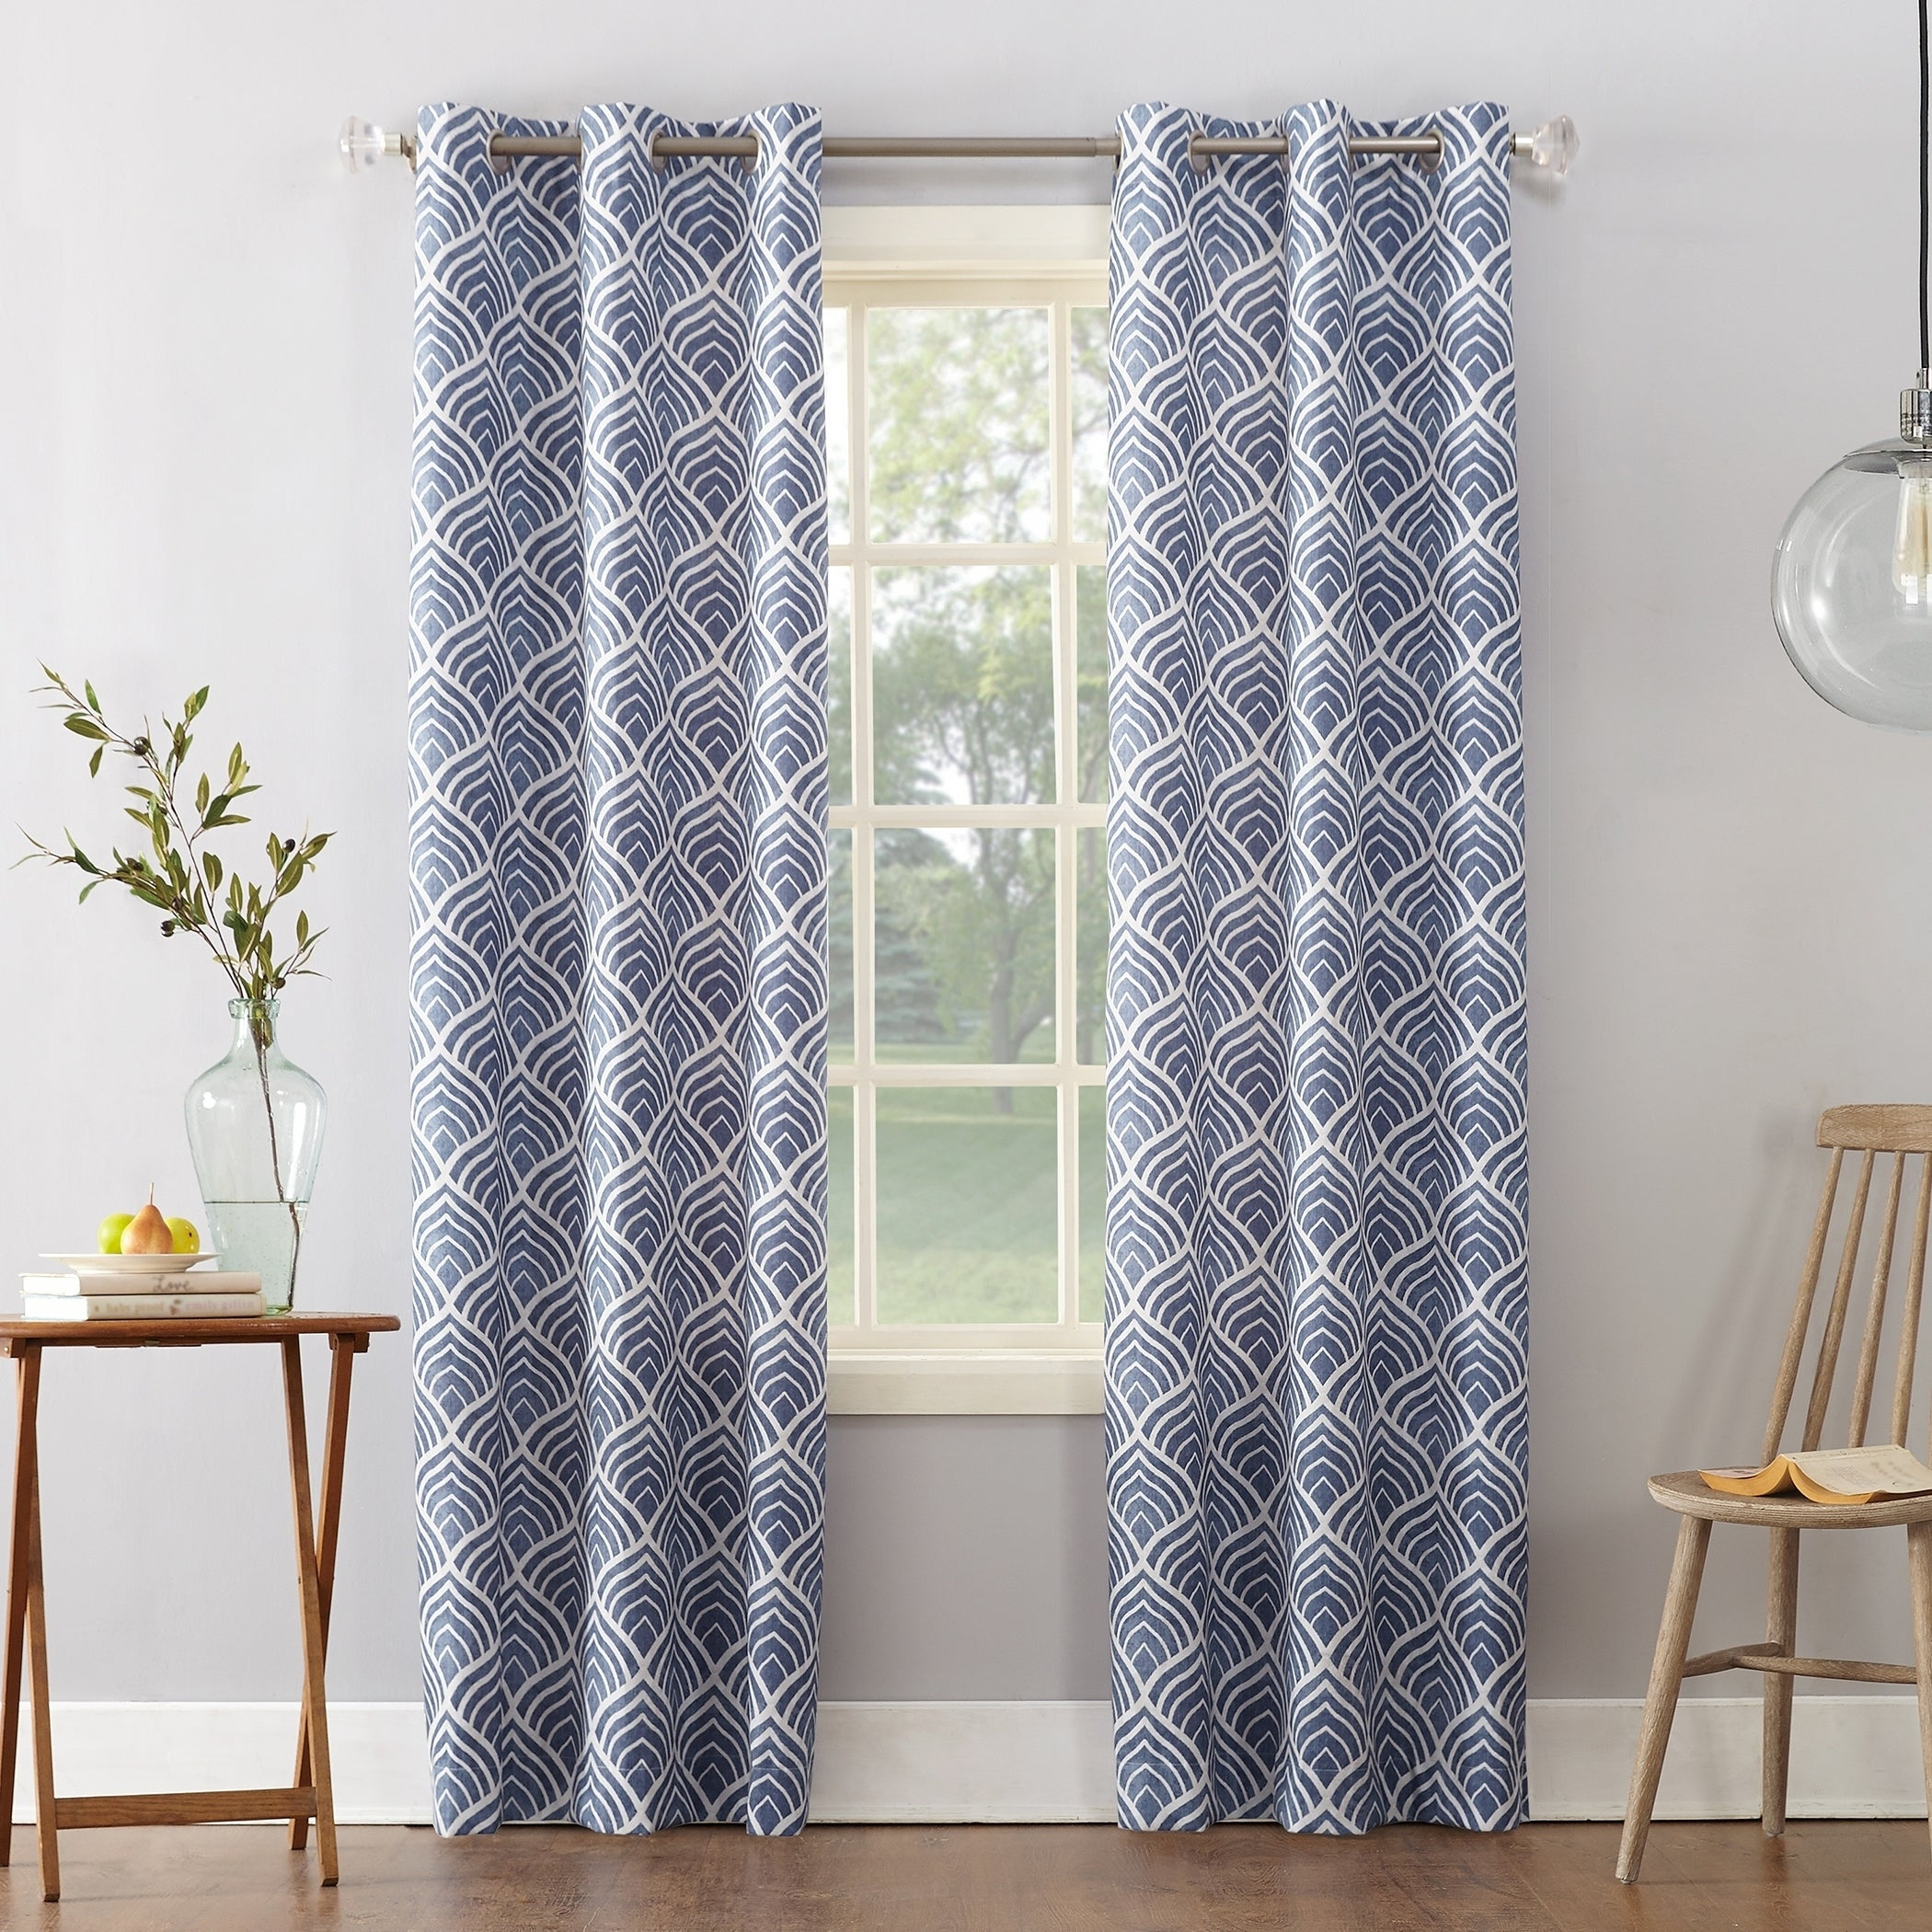 Sun Zero Clarke Geometric Print Textured Thermal Insulated Grommet Curtain  Panel (2 Options Available)